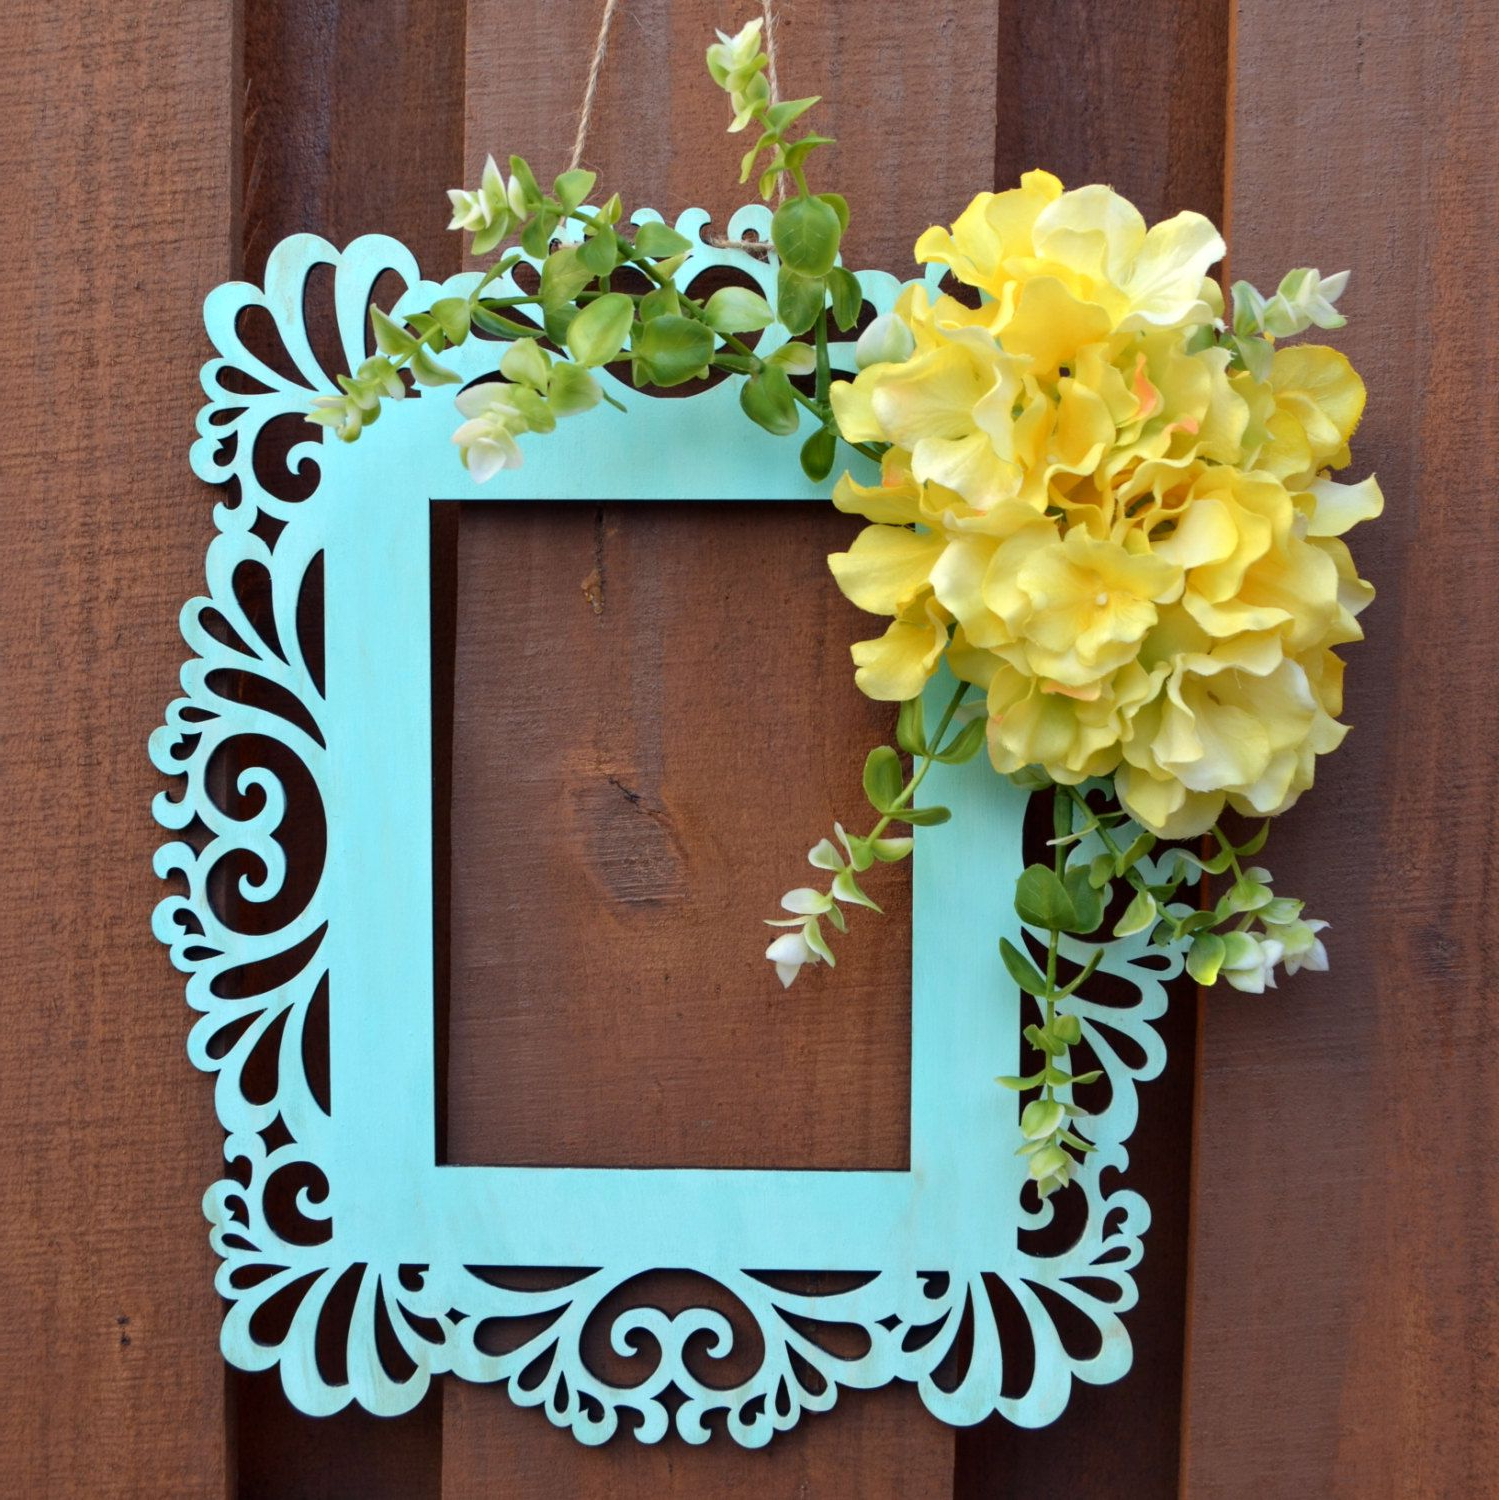 Spring Frame Wreath – Spring Door Hanger – Wall Decor – Frame Wreath In Recent Floral Wreath Wood Framed Wall Decor (View 16 of 20)